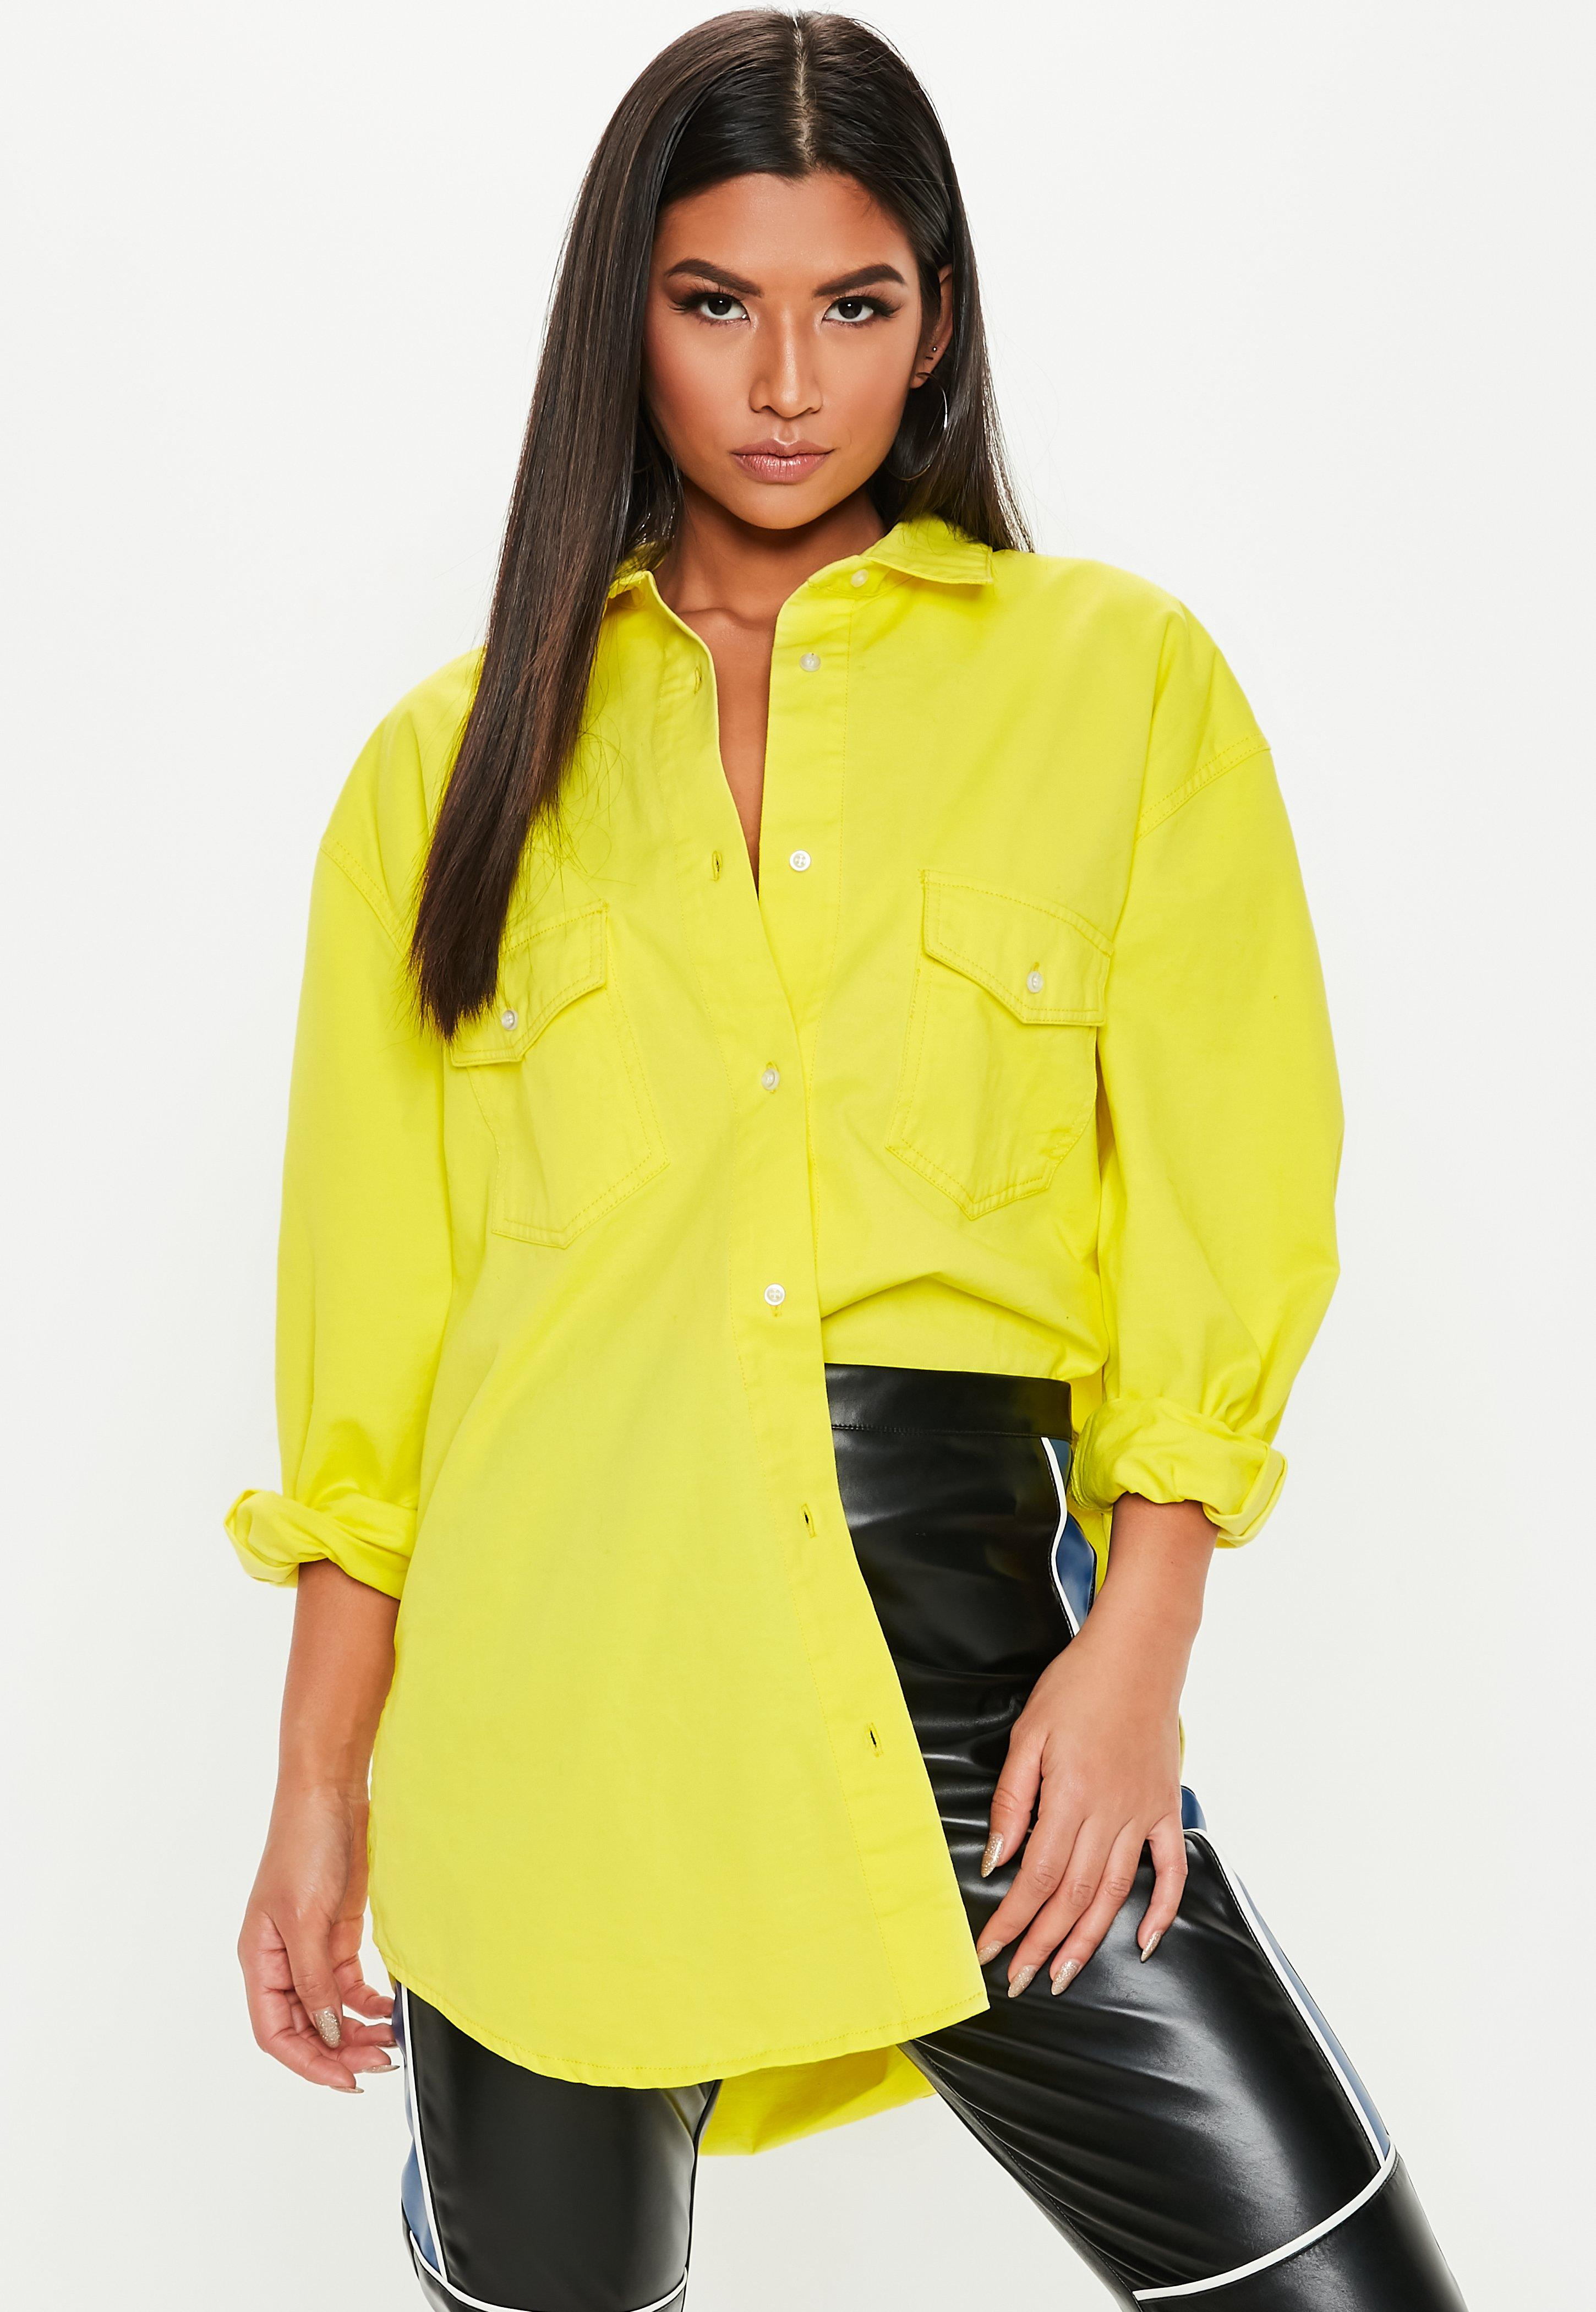 Womens Shirts Buy Shirts Online Missguided